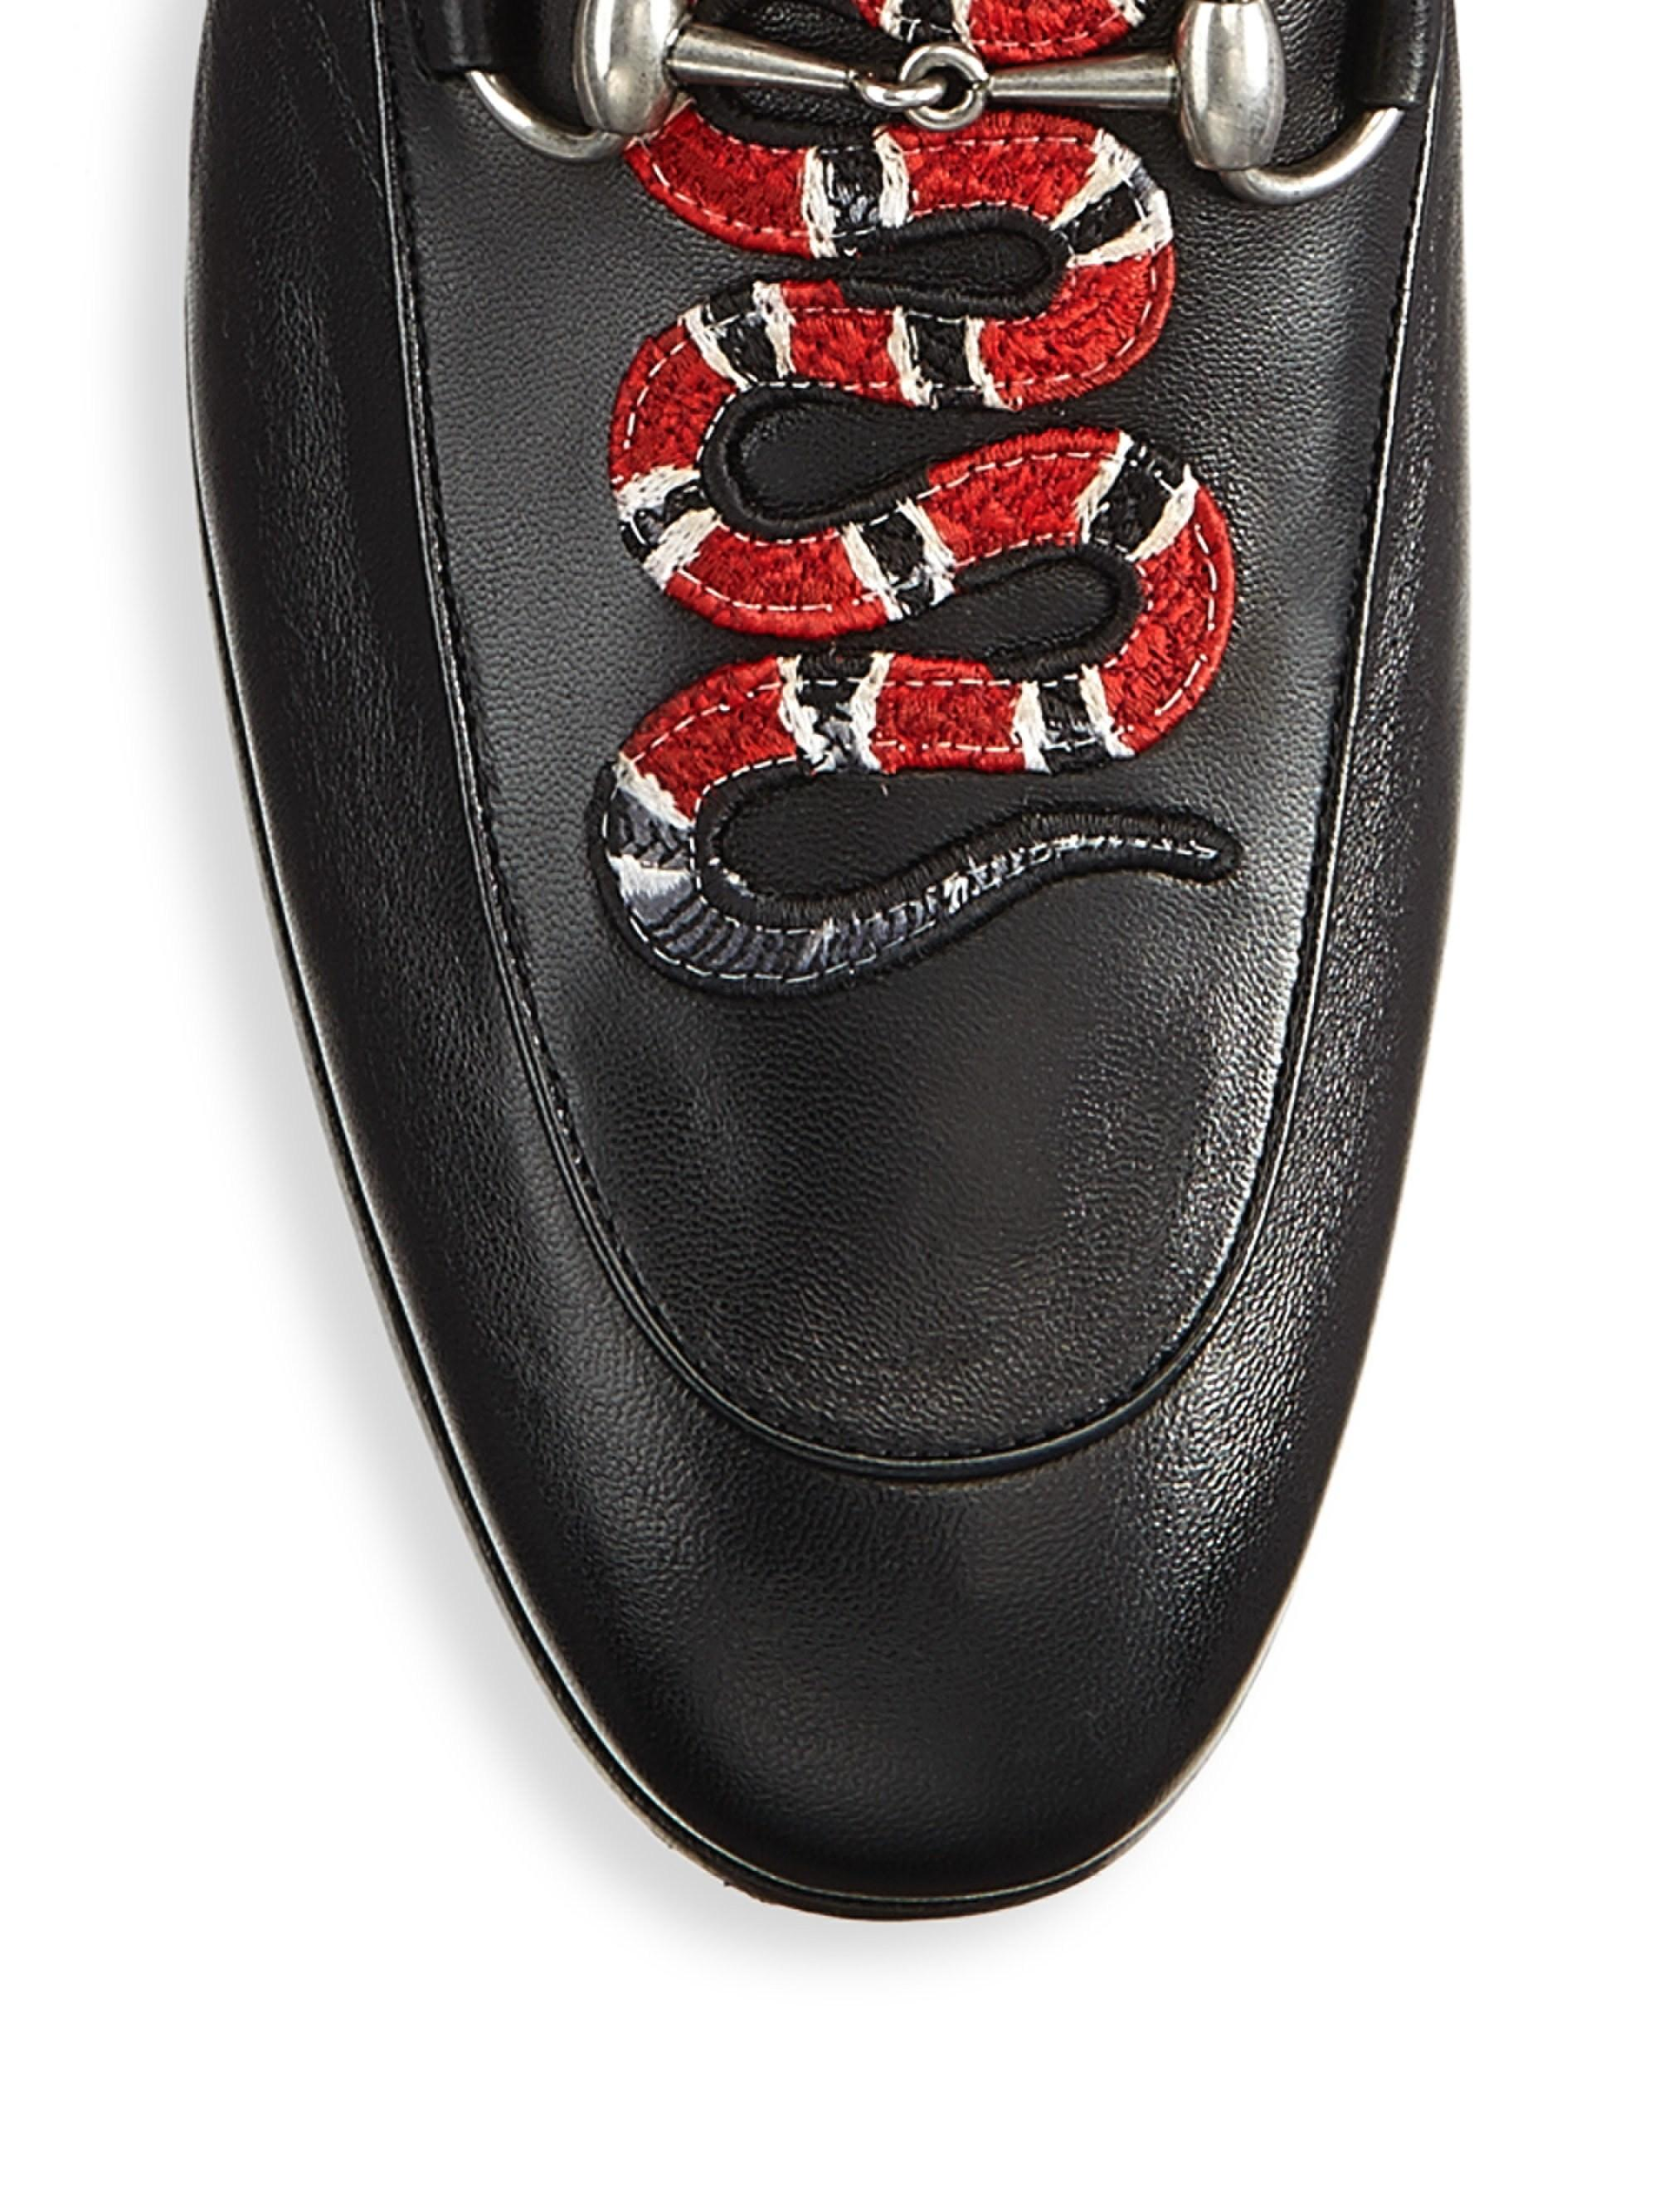 951111c593e Lyst - Gucci Leather Loafer With Kingsnake in Black for Men